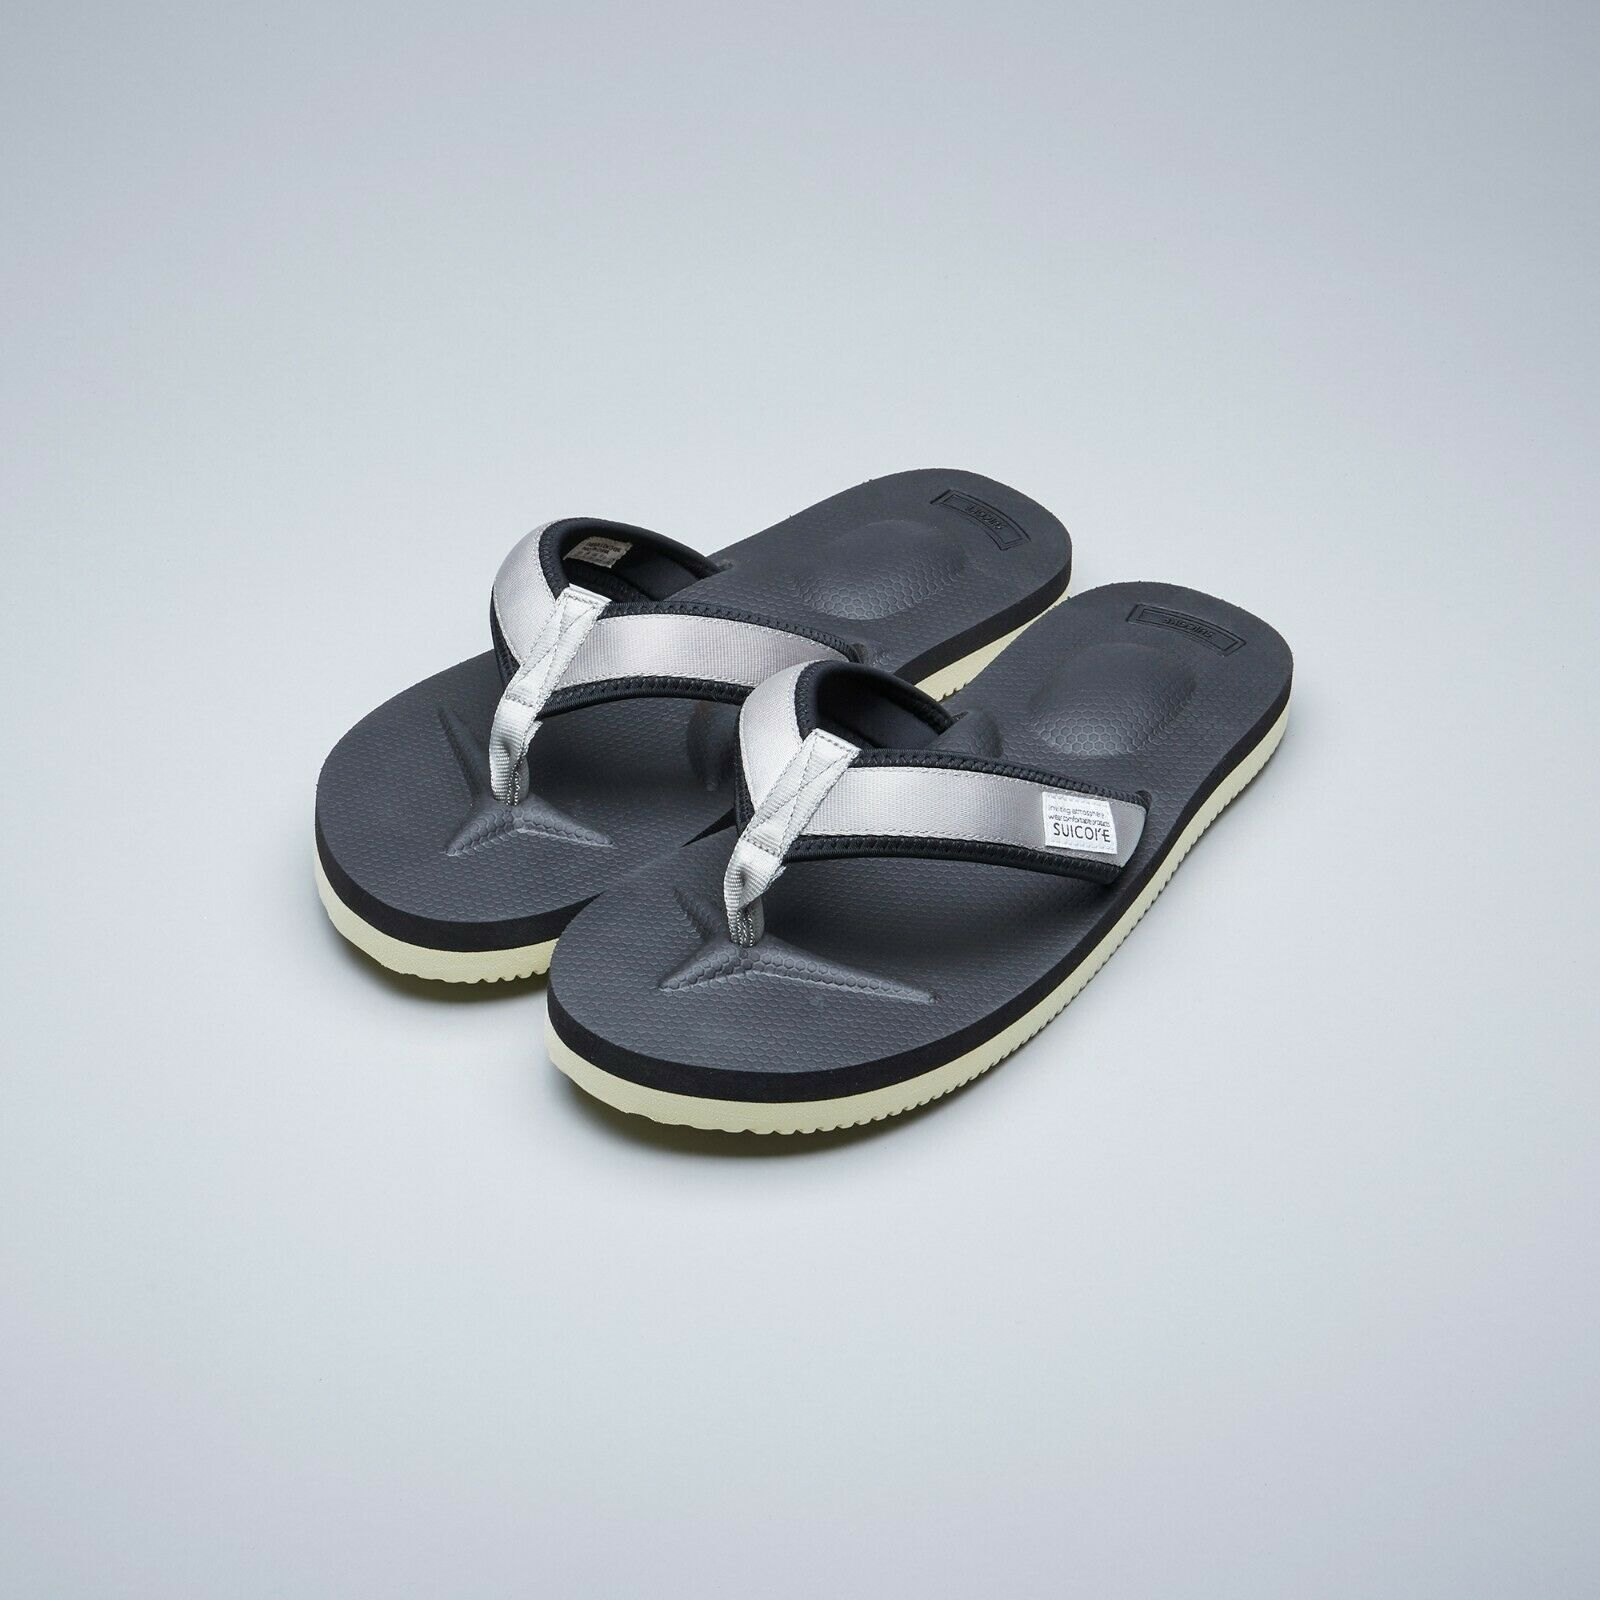 Suicoke OG-021V2   TONO-V2 gris Nylon Vibram Sole Slippers Sandals Slides